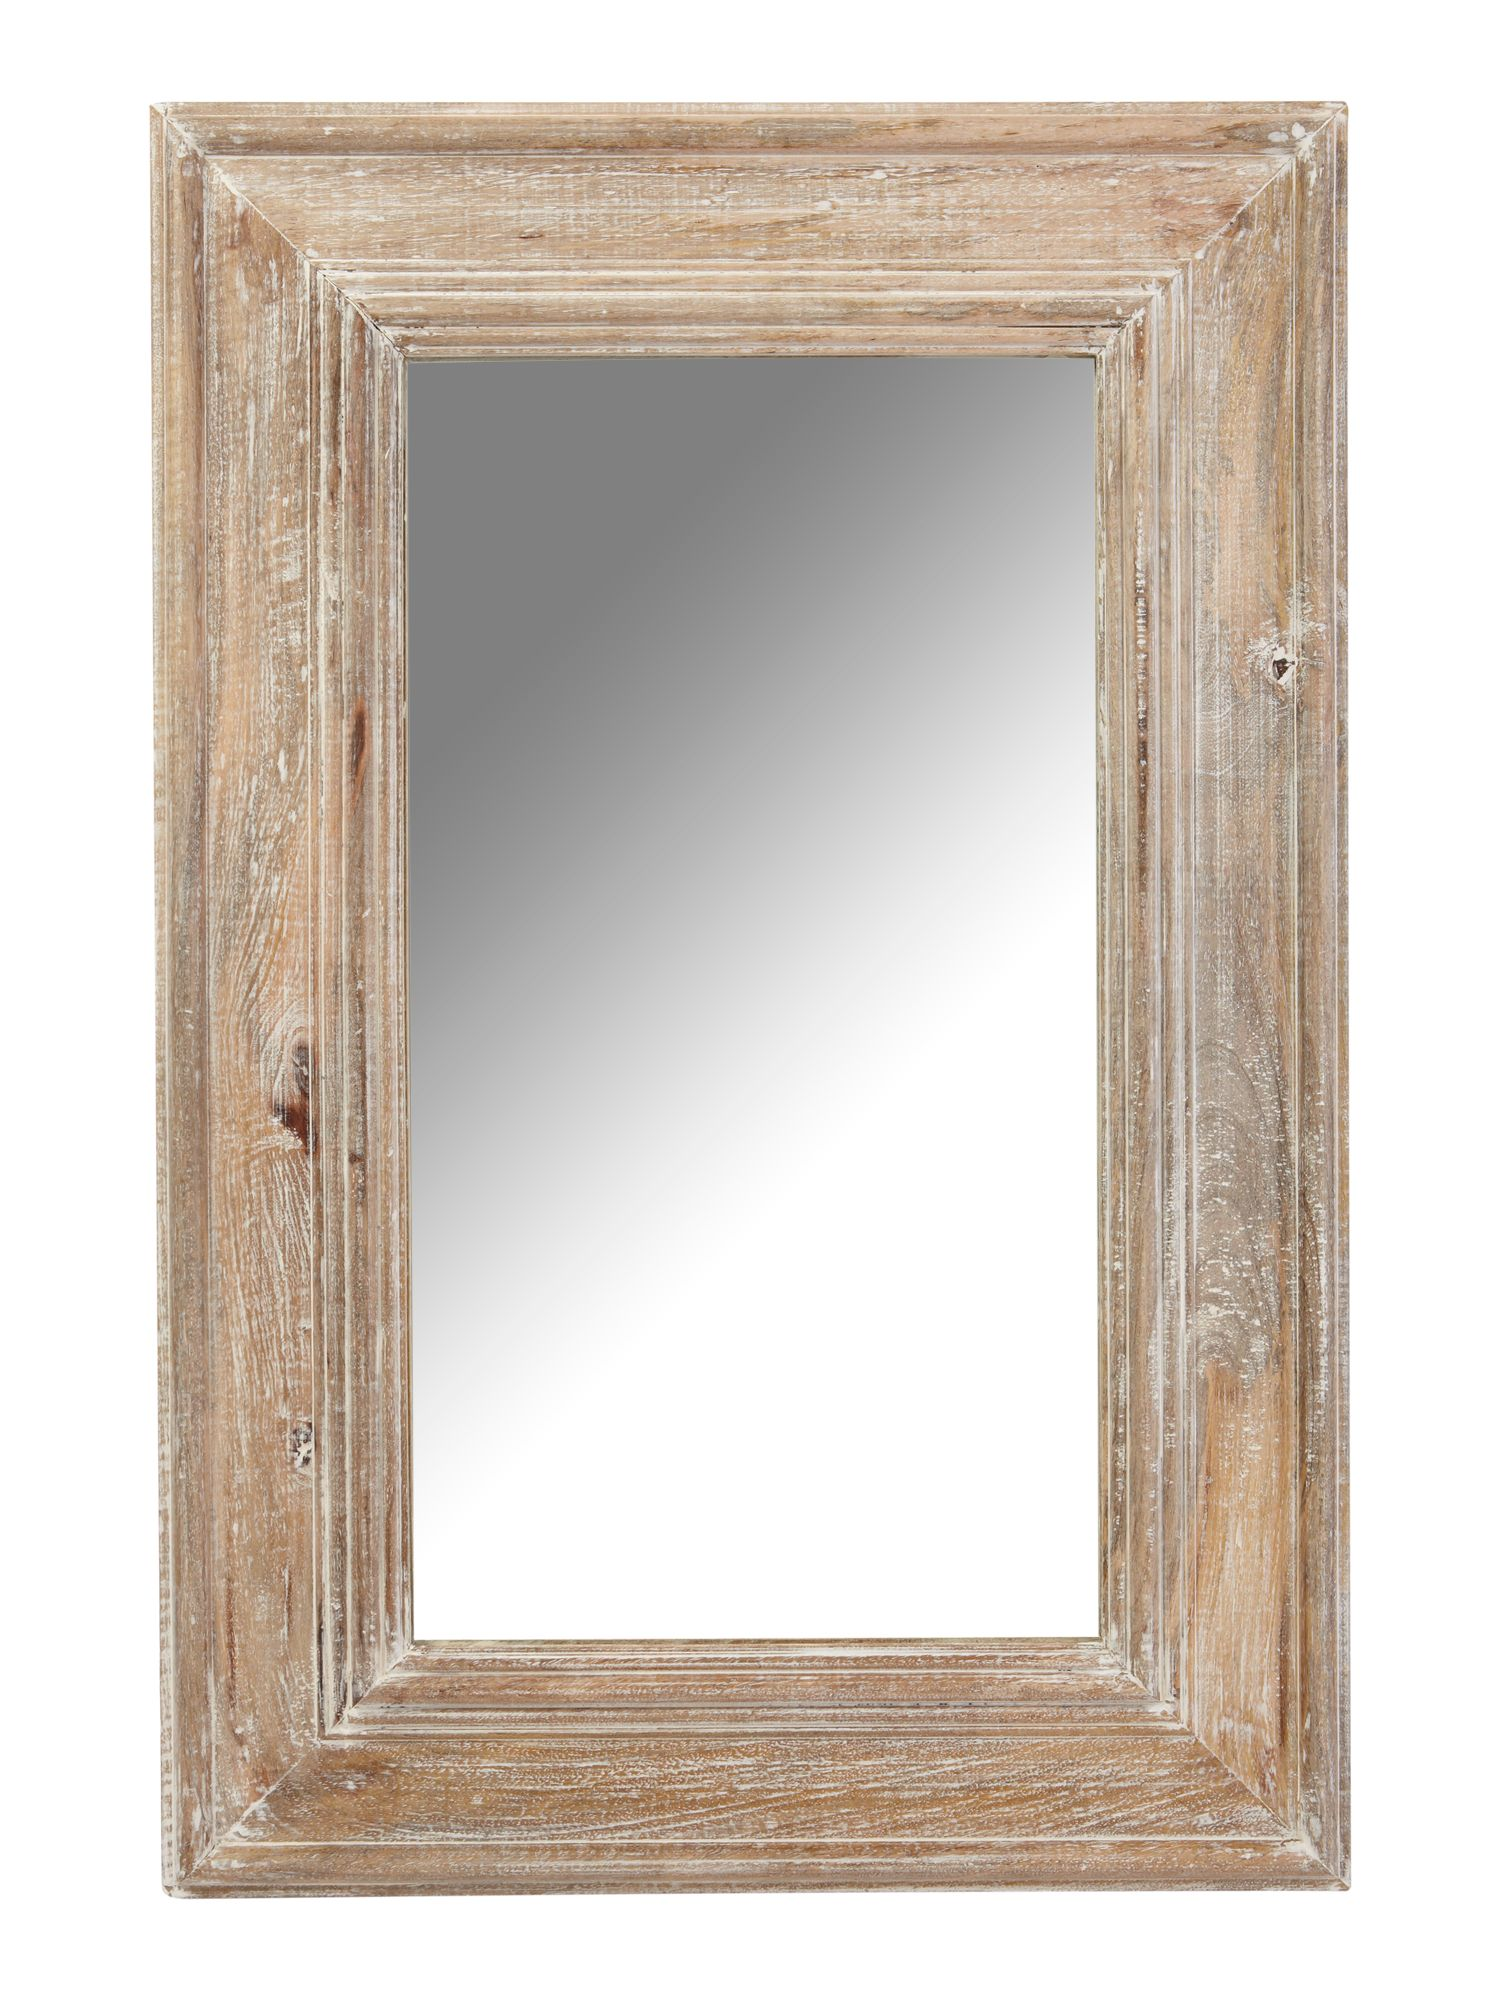 Distressed mango wood framed mirror 60 x 90